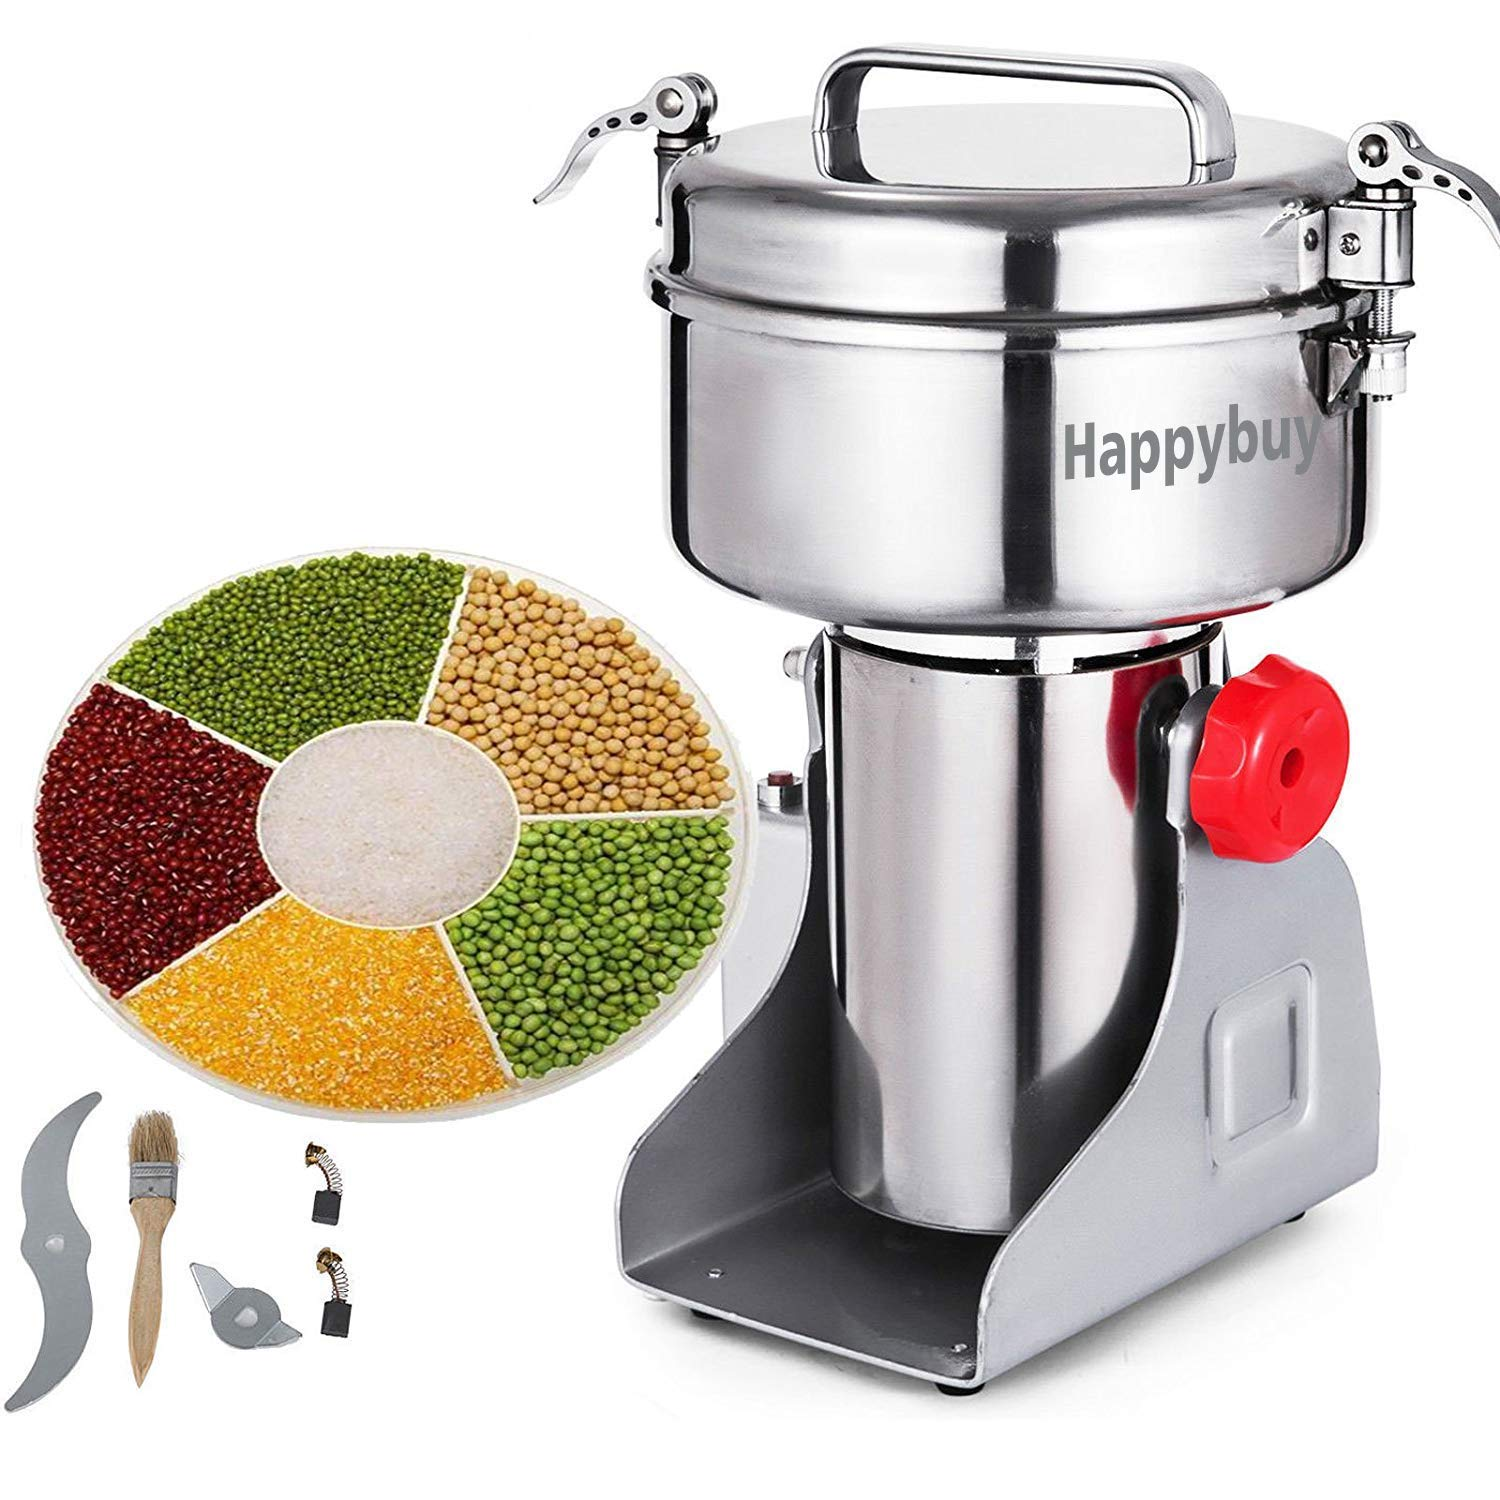 Happybuy Electric Grain Grinder 2000g Pulverizer Grinding Machine 4000W Mill Grinder Powder Machine 50-300 Mesh Stainless Steel Swing Type Grain Grinder Mill for Kitchen Herb Spice Pepper Coffee by Happybuy